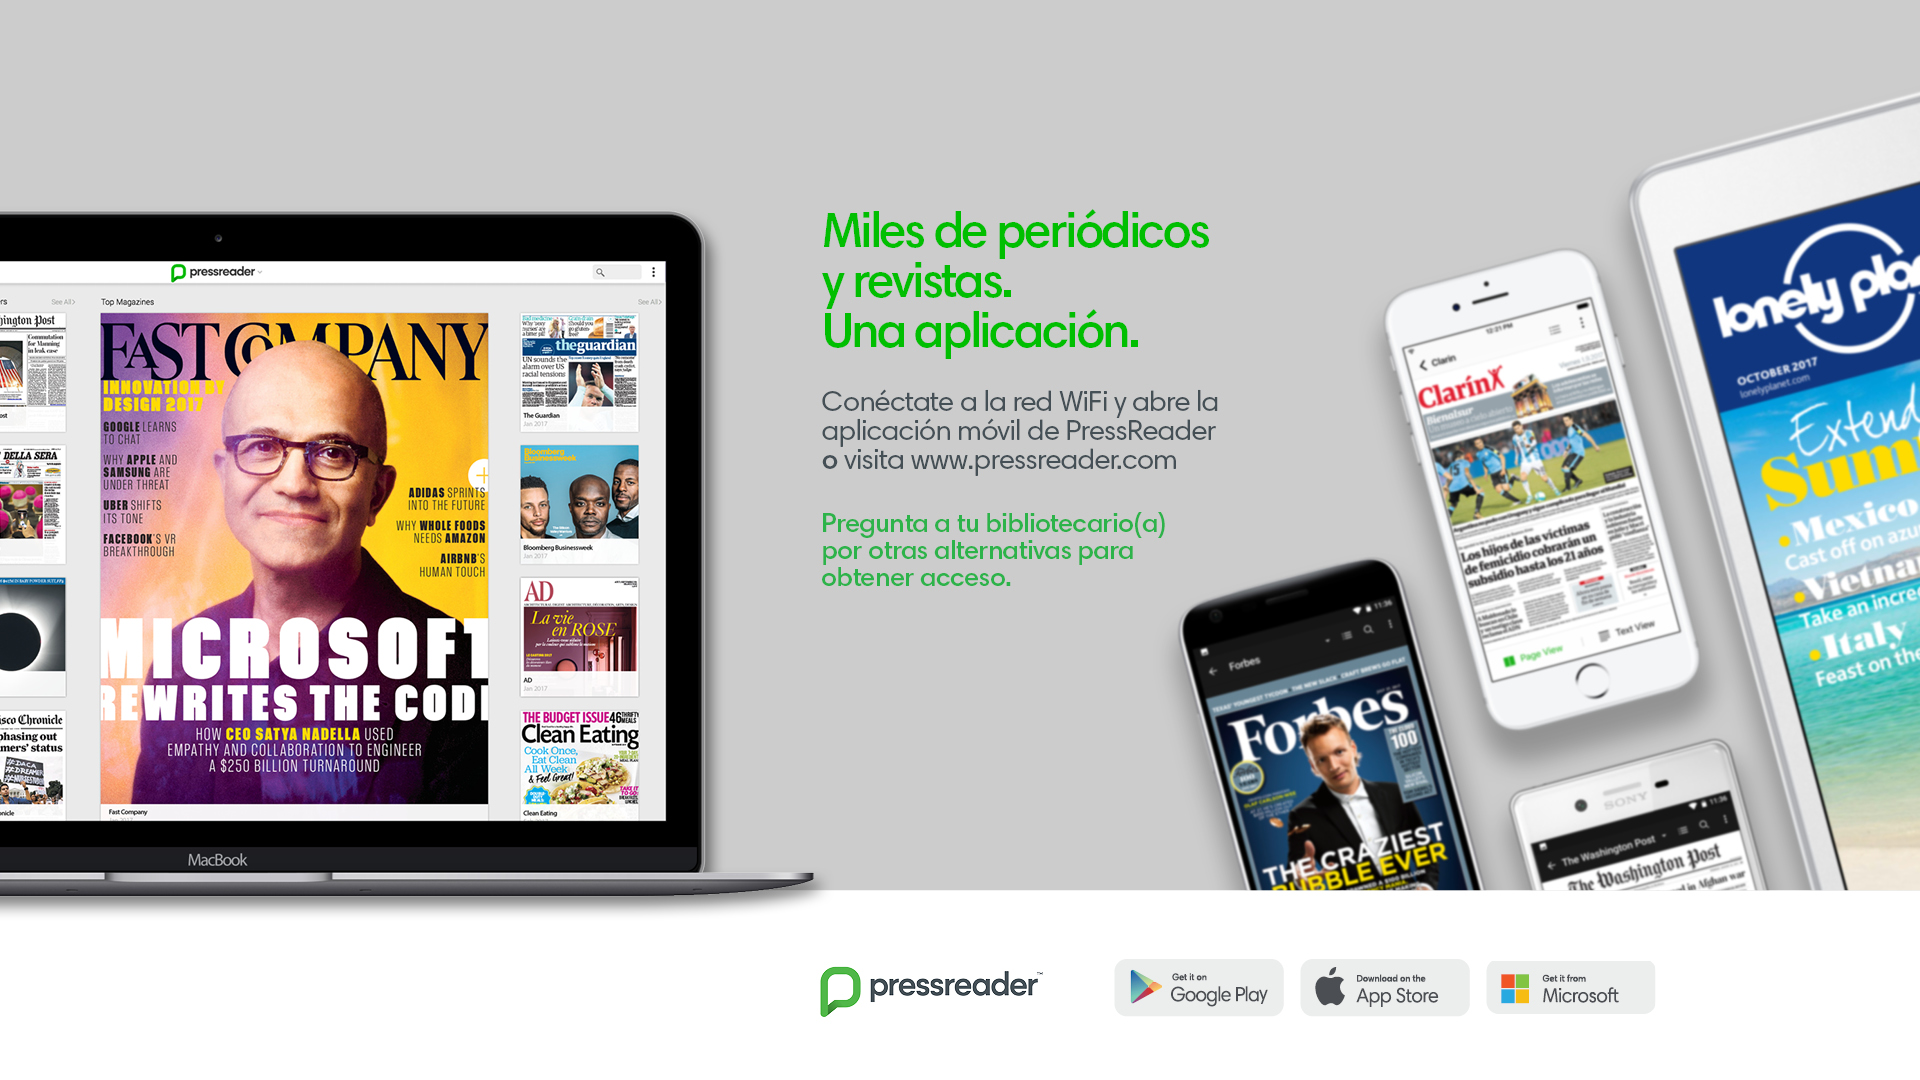 PressReader poster. Show magazine covers in Spanish and English displayed on tablets, phones and laptops.